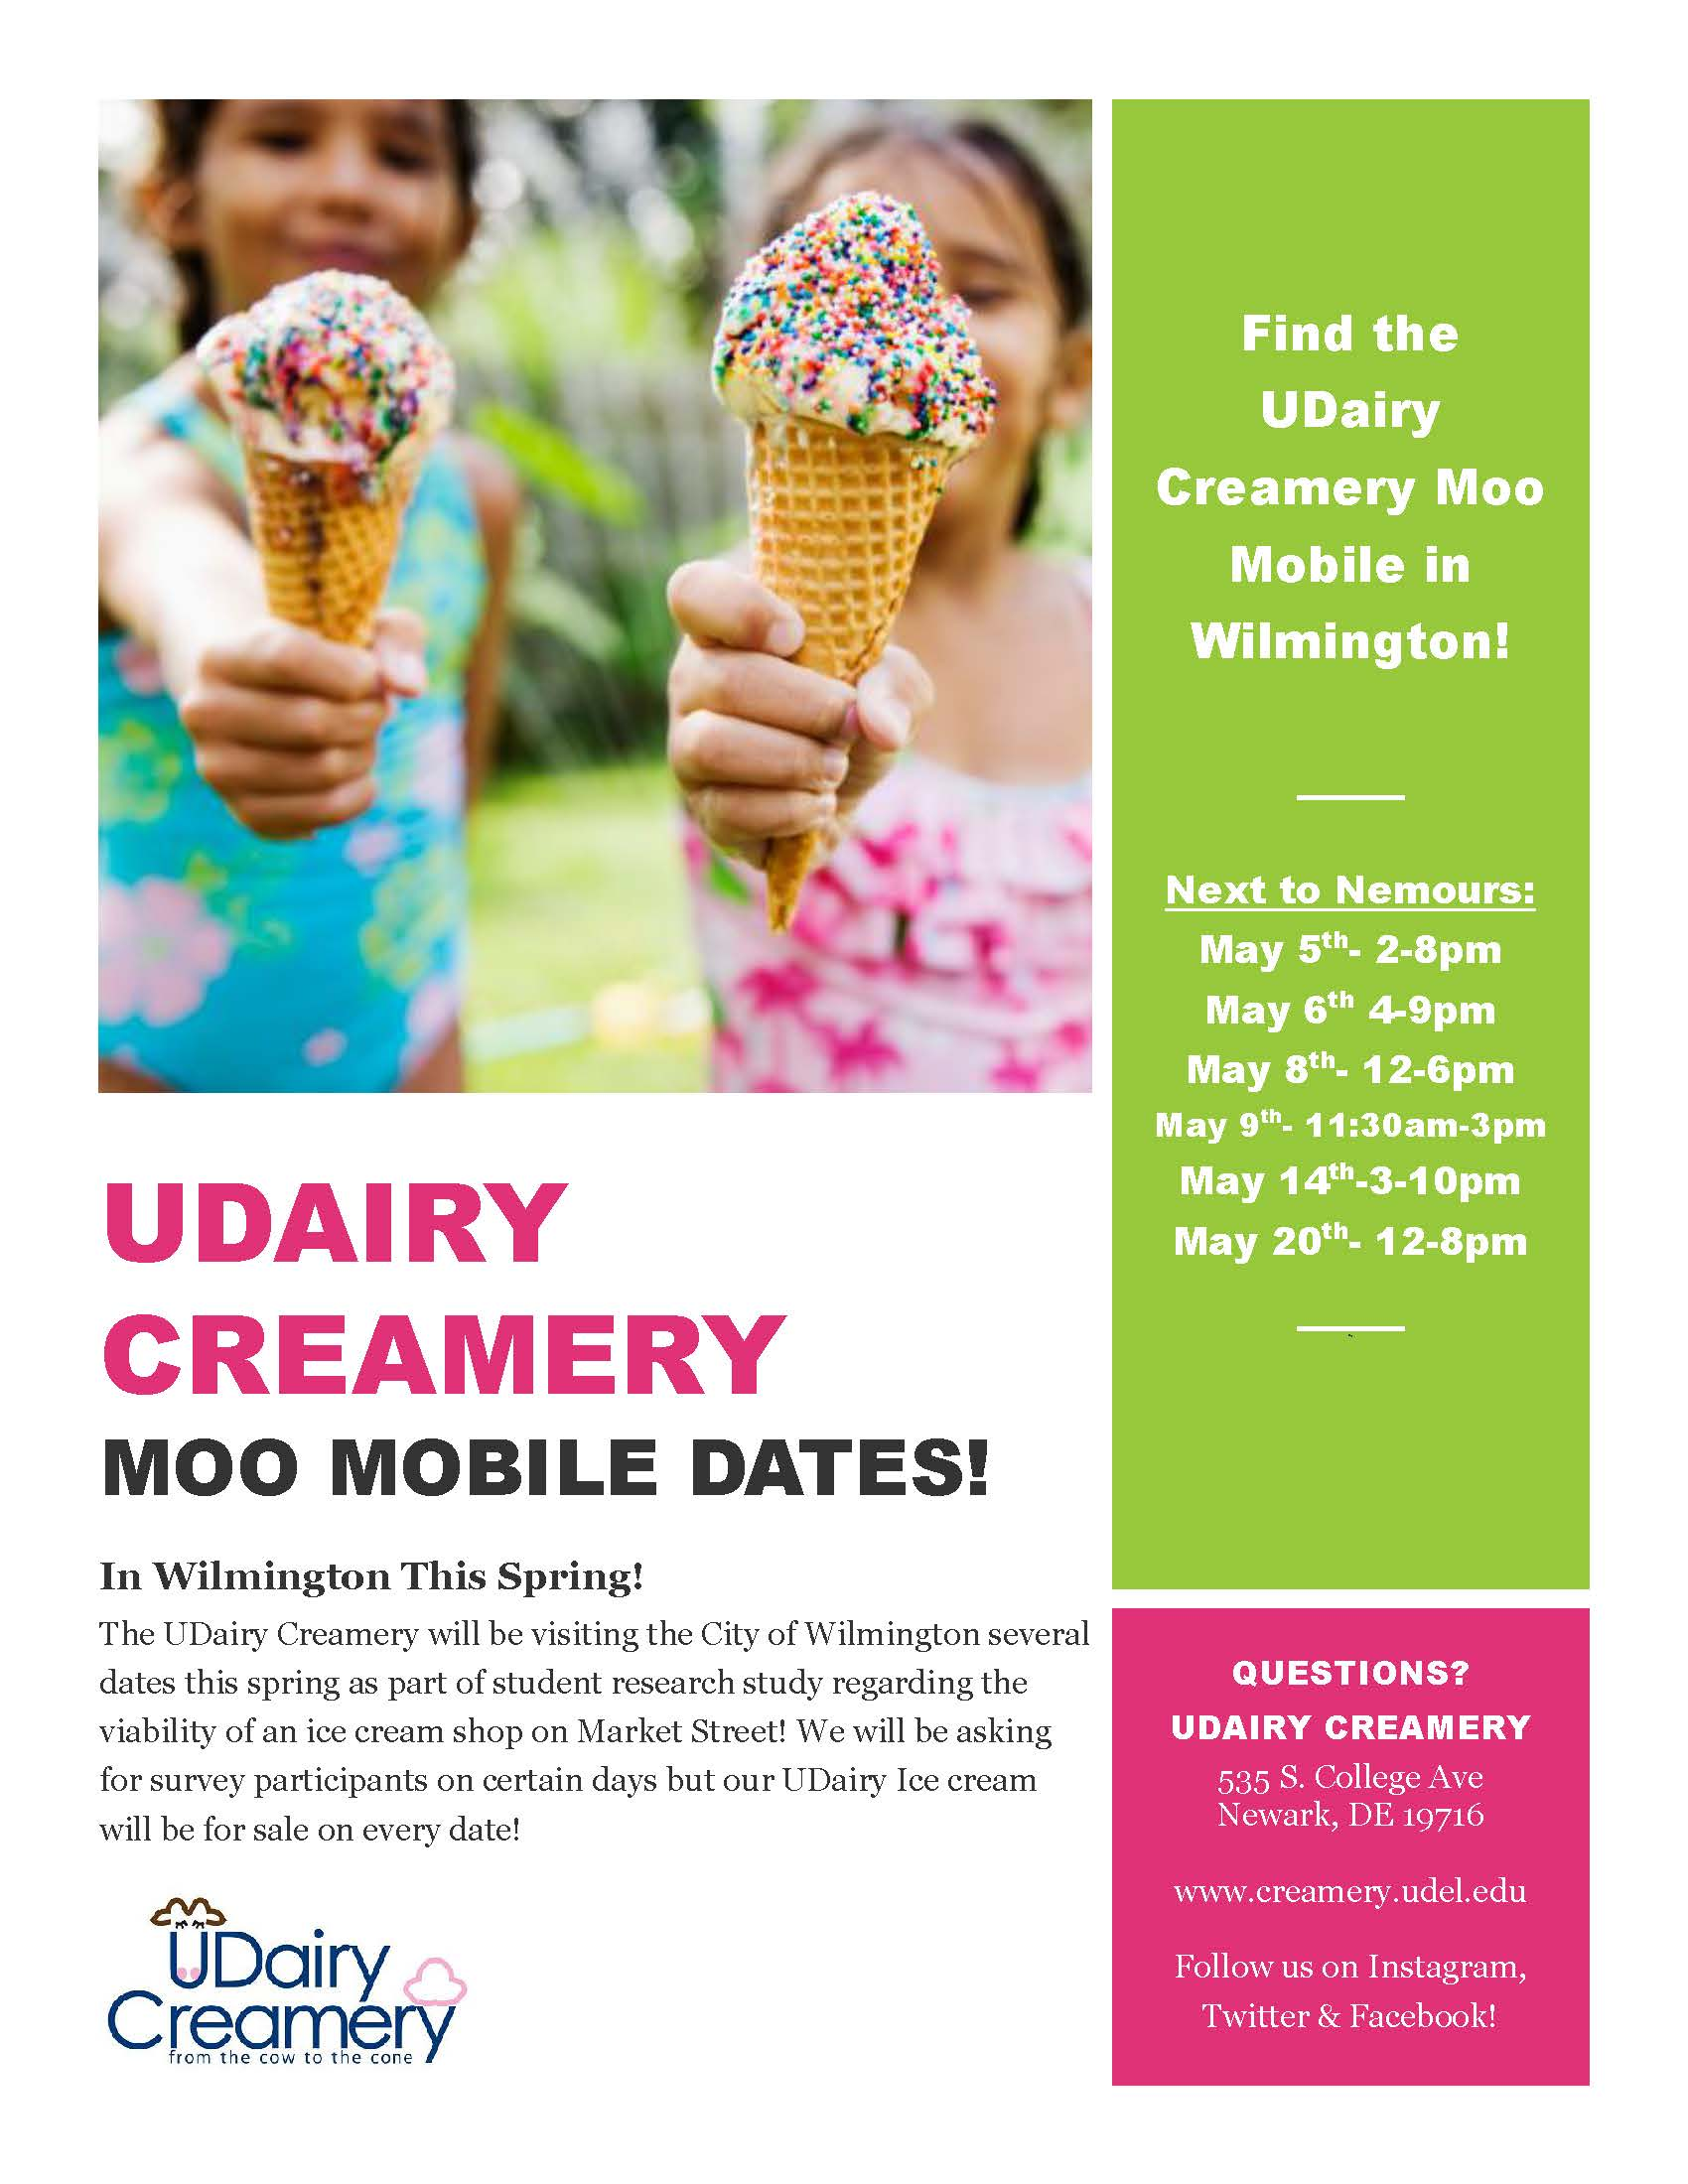 Wish UDairy Creamery Would Open an Ice Cream Parlor on Market Street? Look for the 'Moo Mobile' This May!